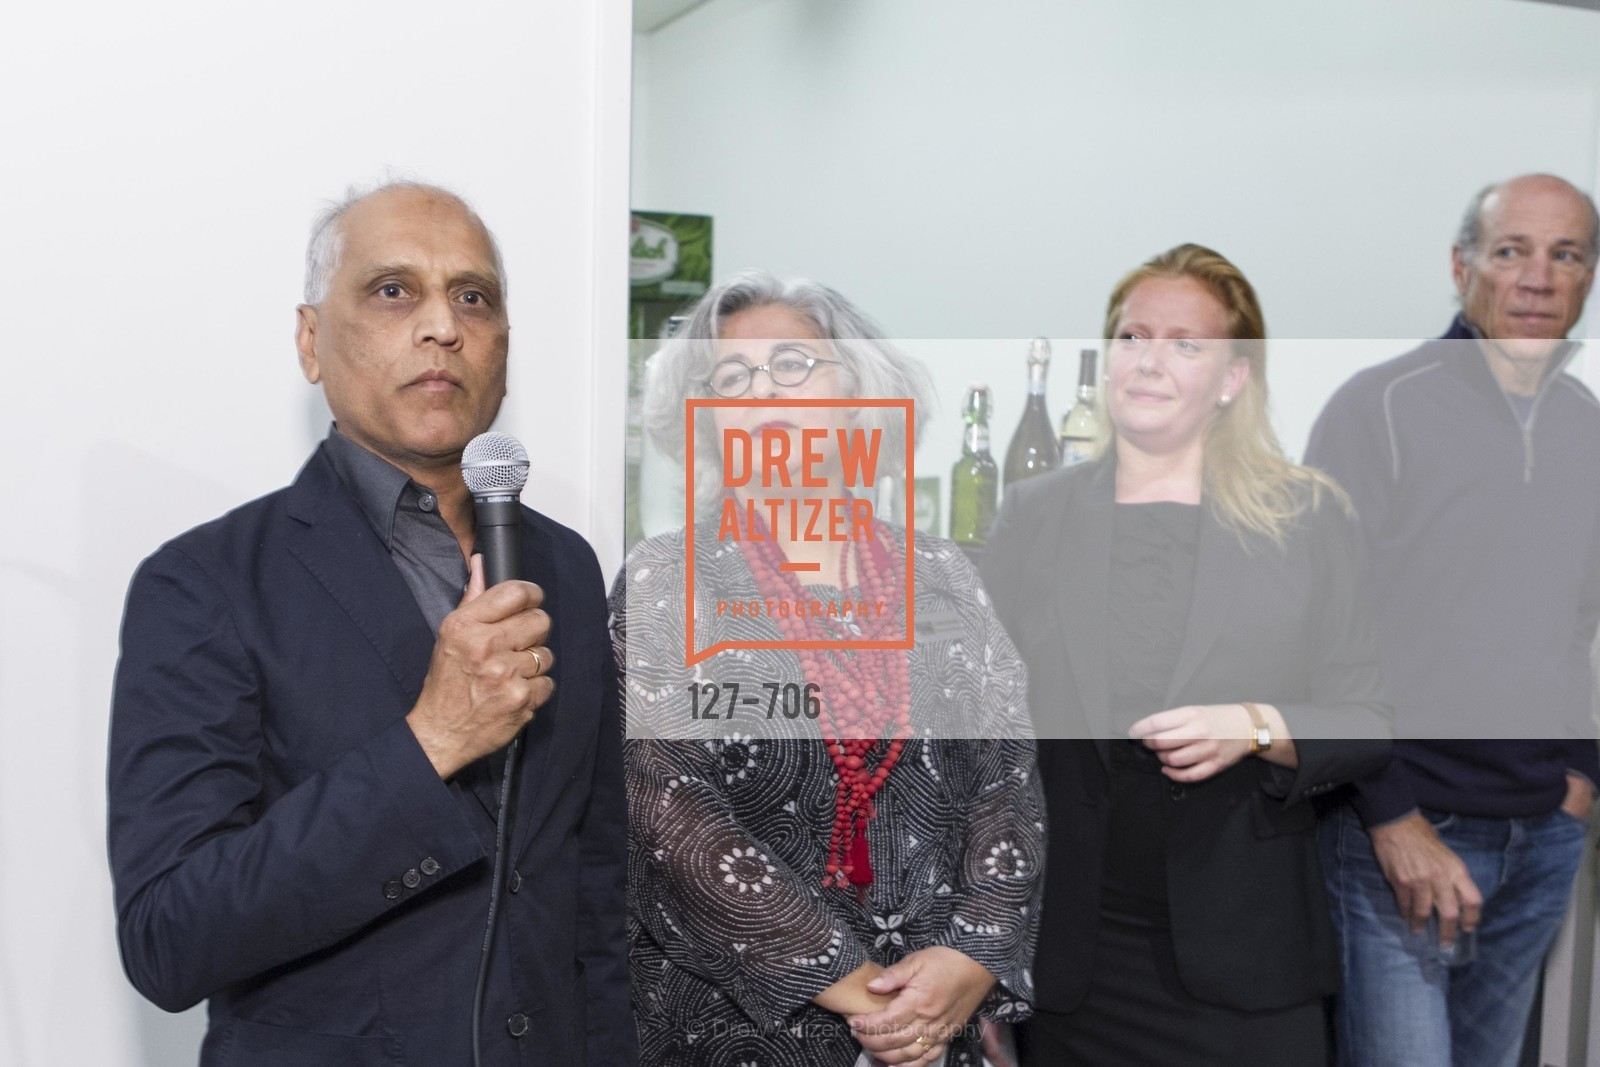 Zahid Sardar, JoAnn Edwards, Exhibit Opening at the MUSEUM OF CRAFT AND DESIGN - Hands Off: New Dutch Design at the Confluence of Technology & Craft, US, May 8th, 2015,Drew Altizer, Drew Altizer Photography, full-service agency, private events, San Francisco photographer, photographer california